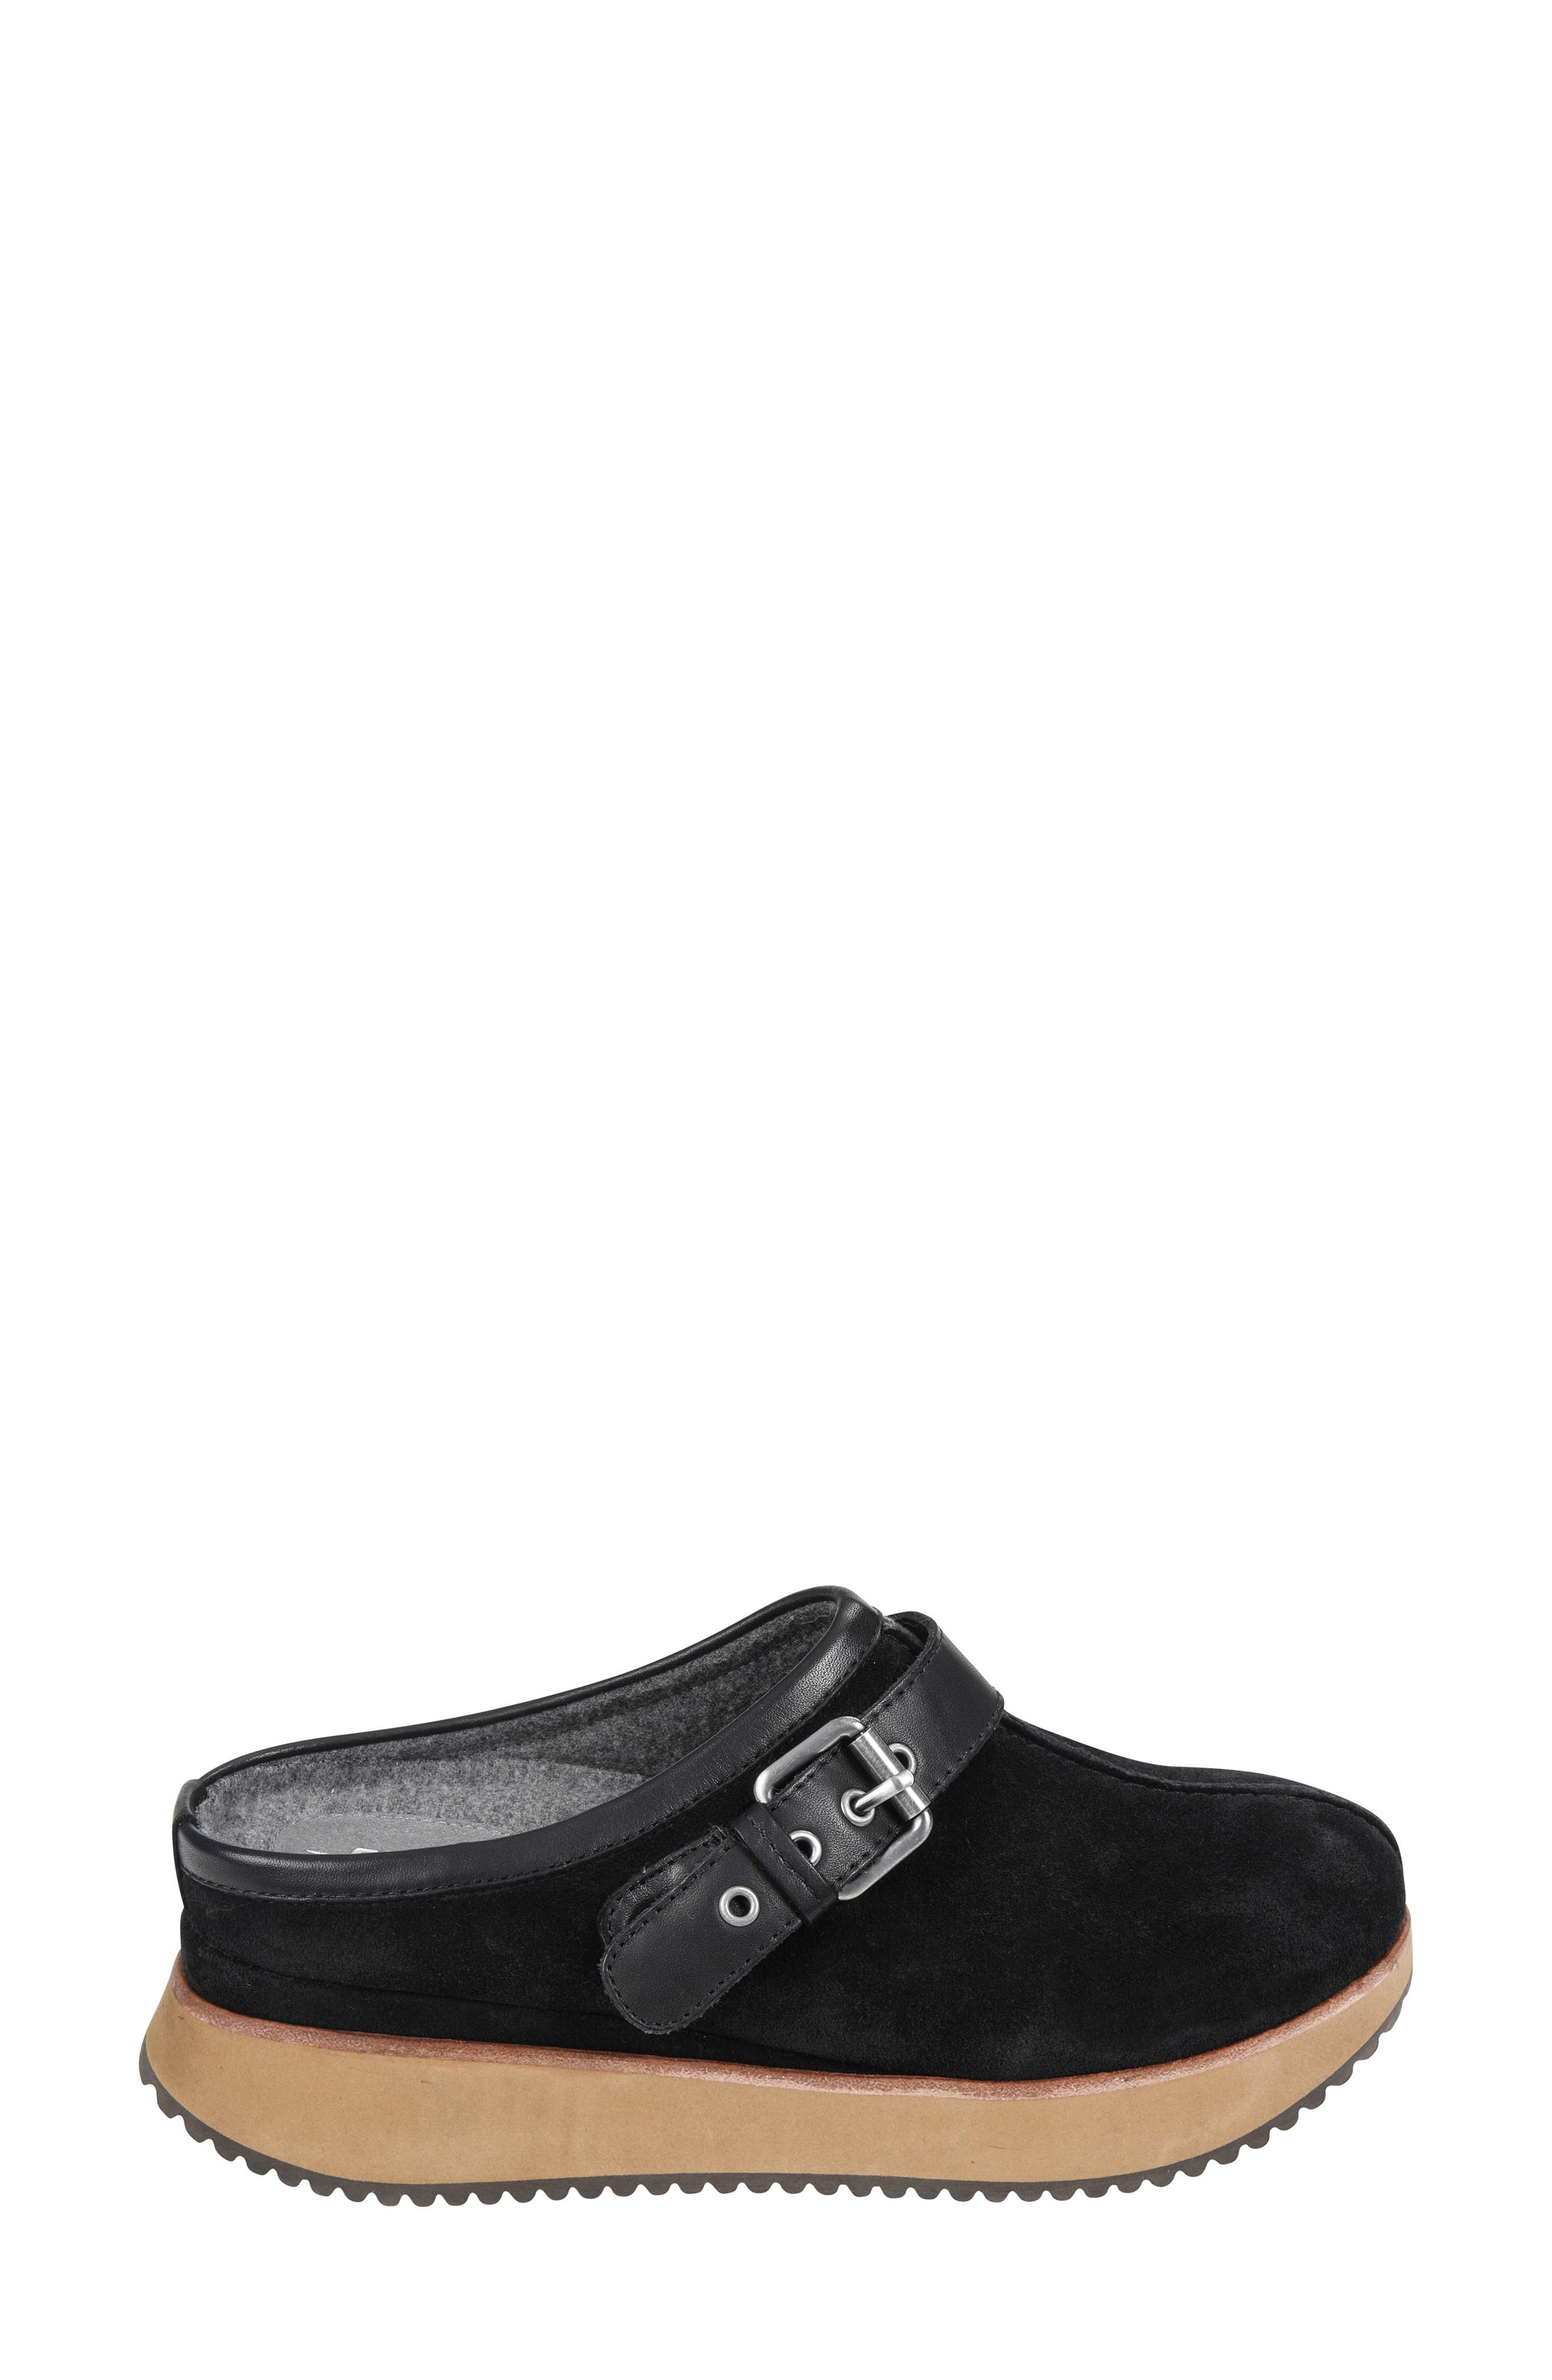 Lyra Buckle Clog,                             Alternate thumbnail 3, color,                             BLACK SUEDE